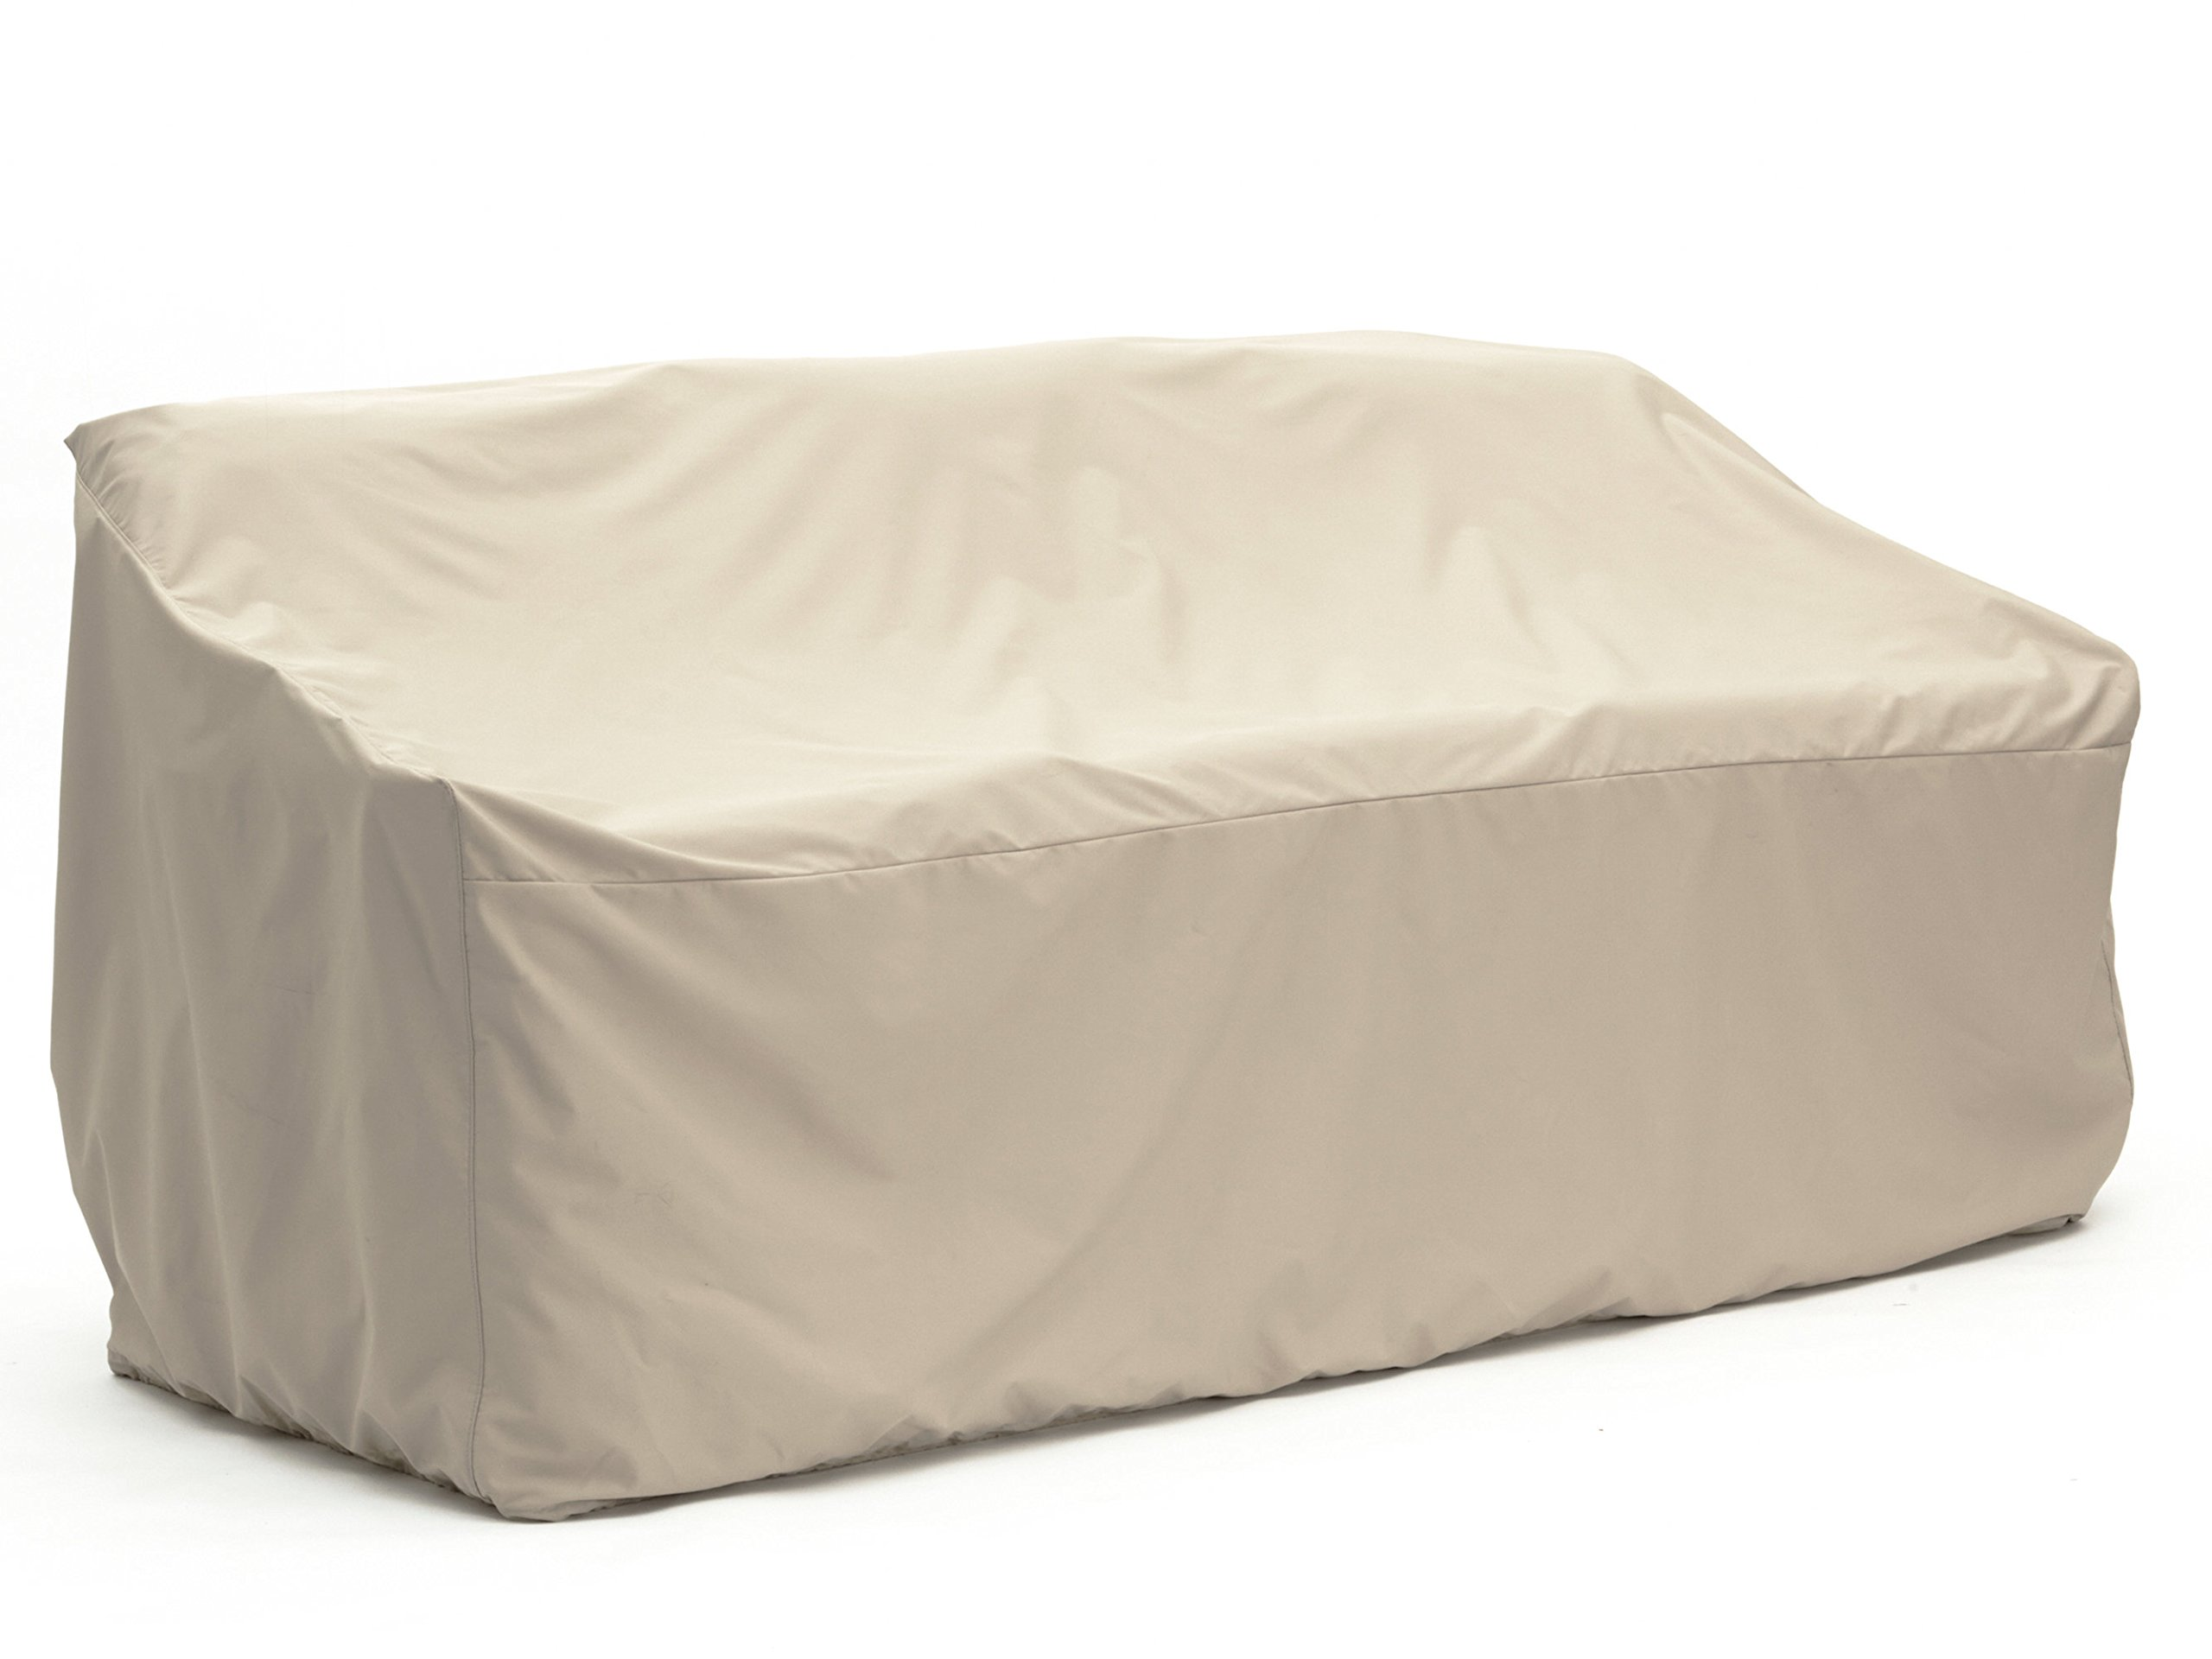 Covermates - Outdoor Patio Sofa Cover - 82W x 40D x 40H - Elite Collection - 3 YR Warranty - Year Around Protection - Khaki by Covermates